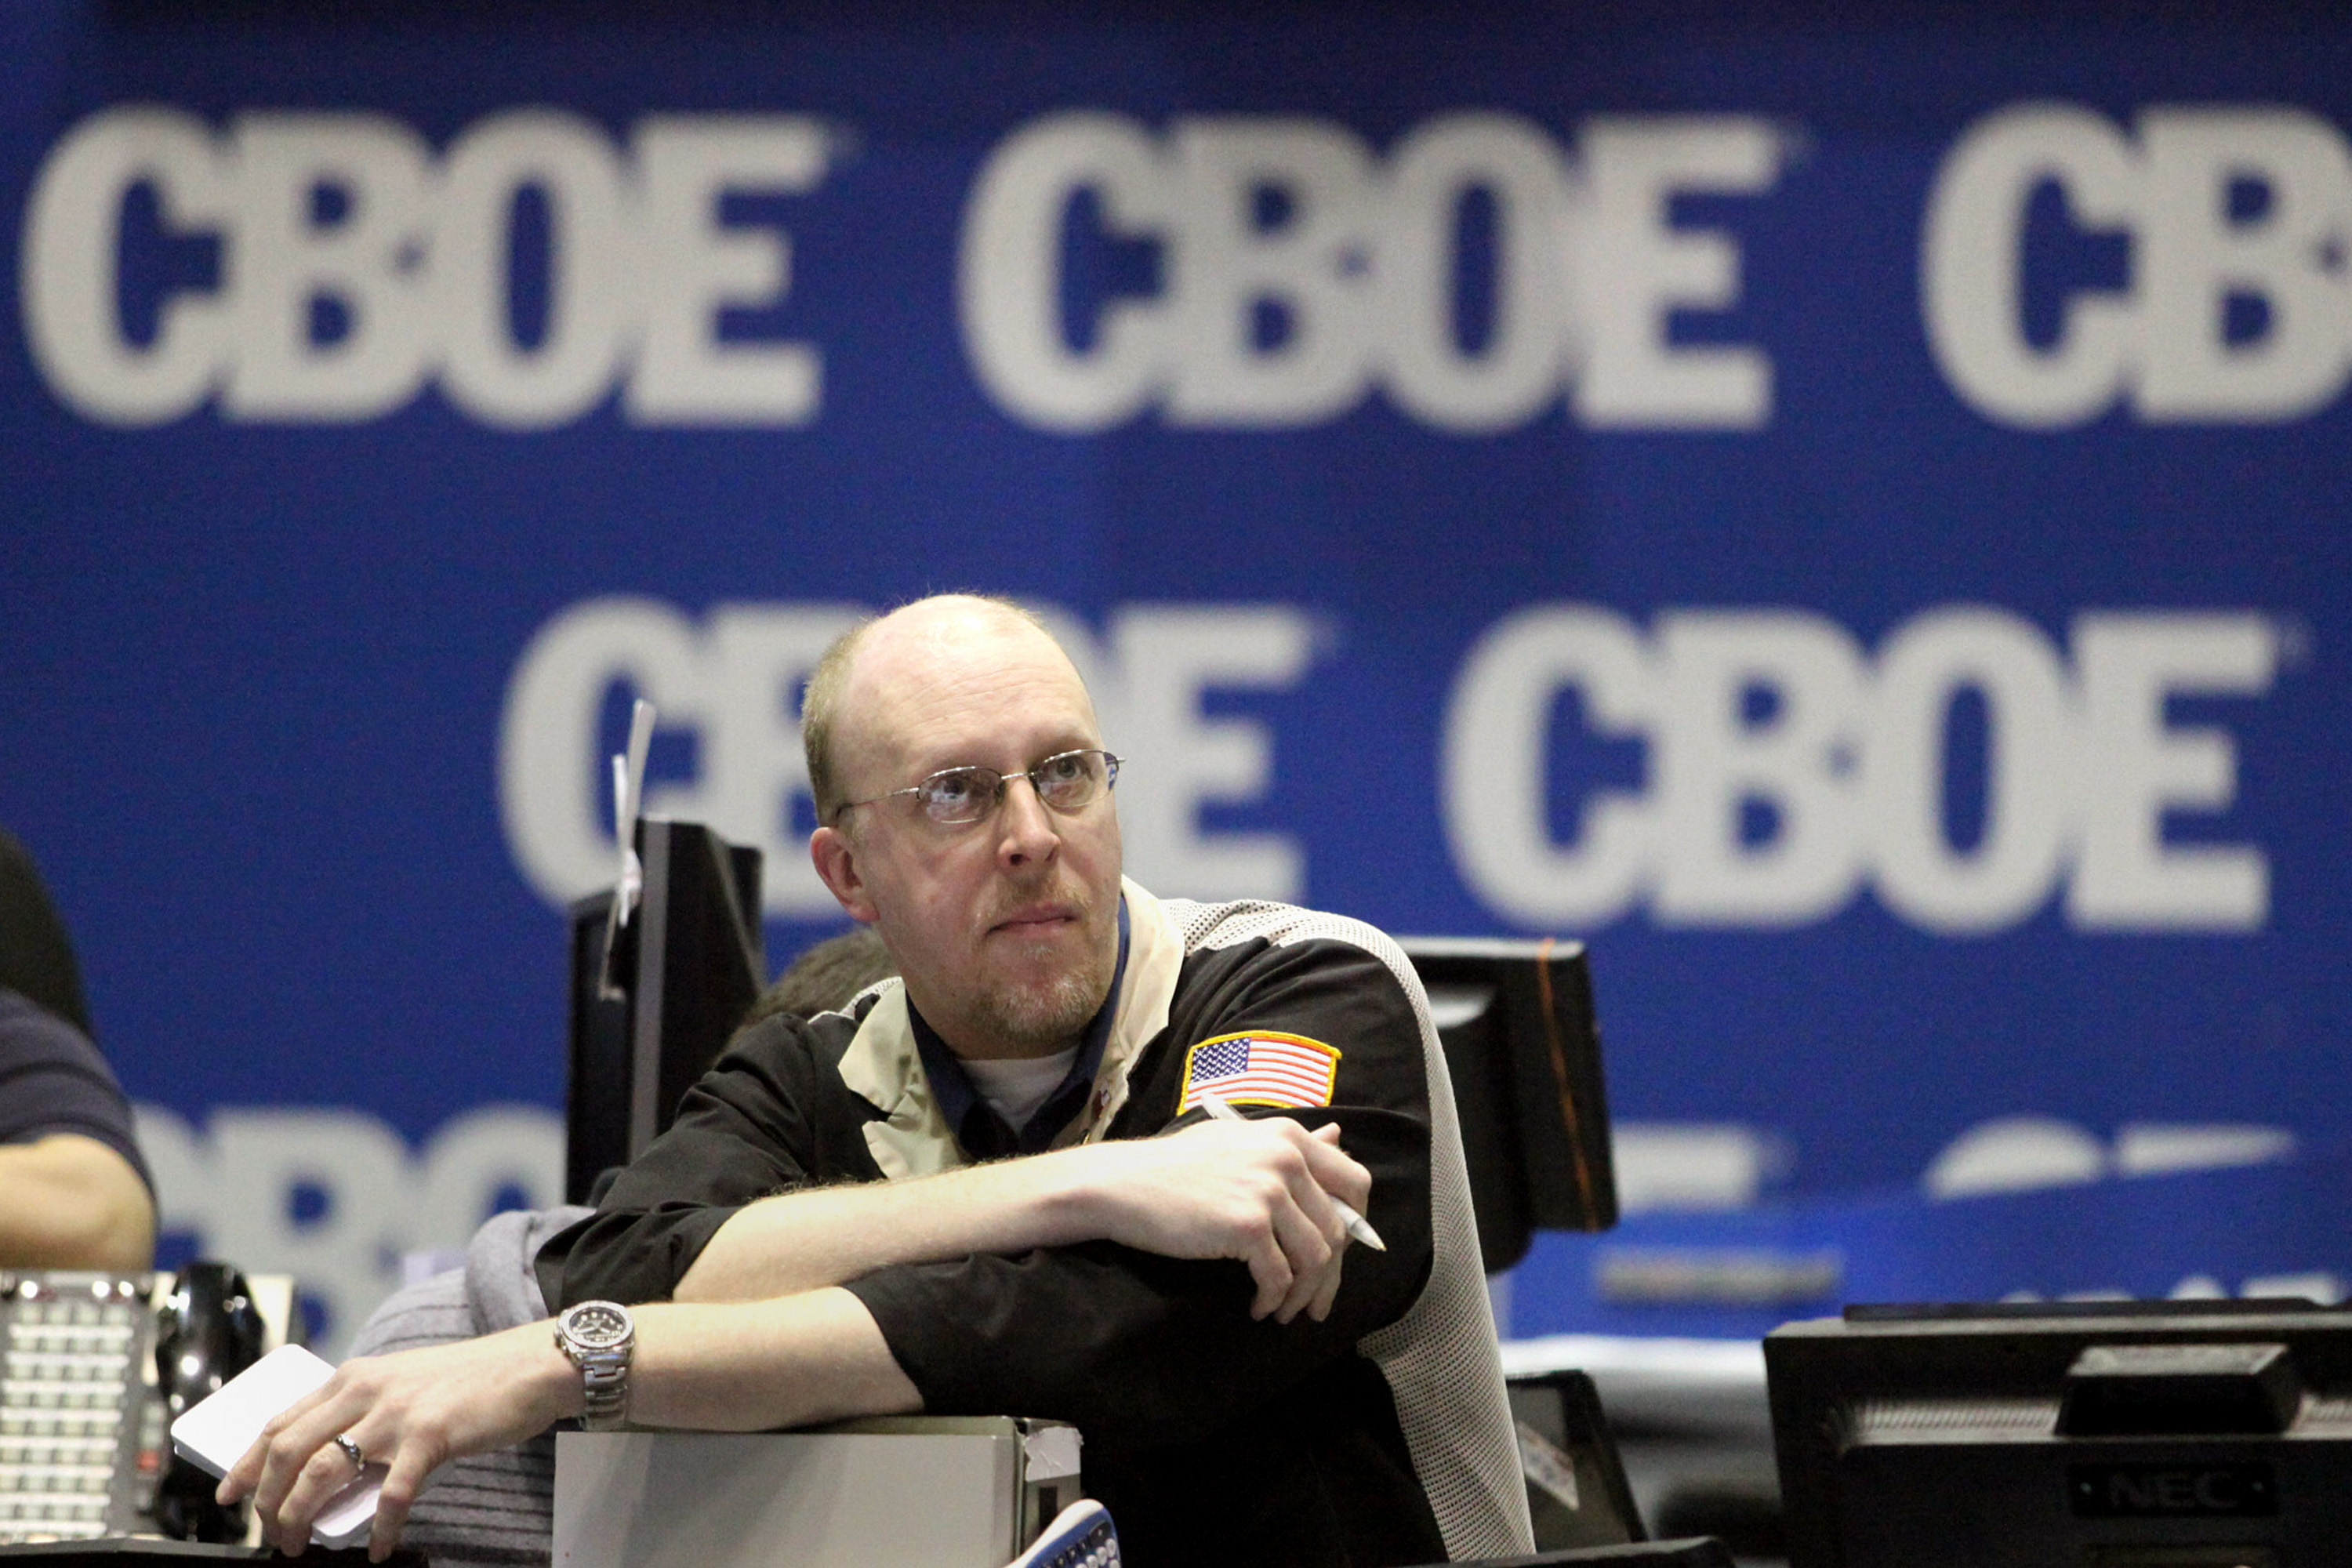 Binary options brokers like those that are recommended by the cboe